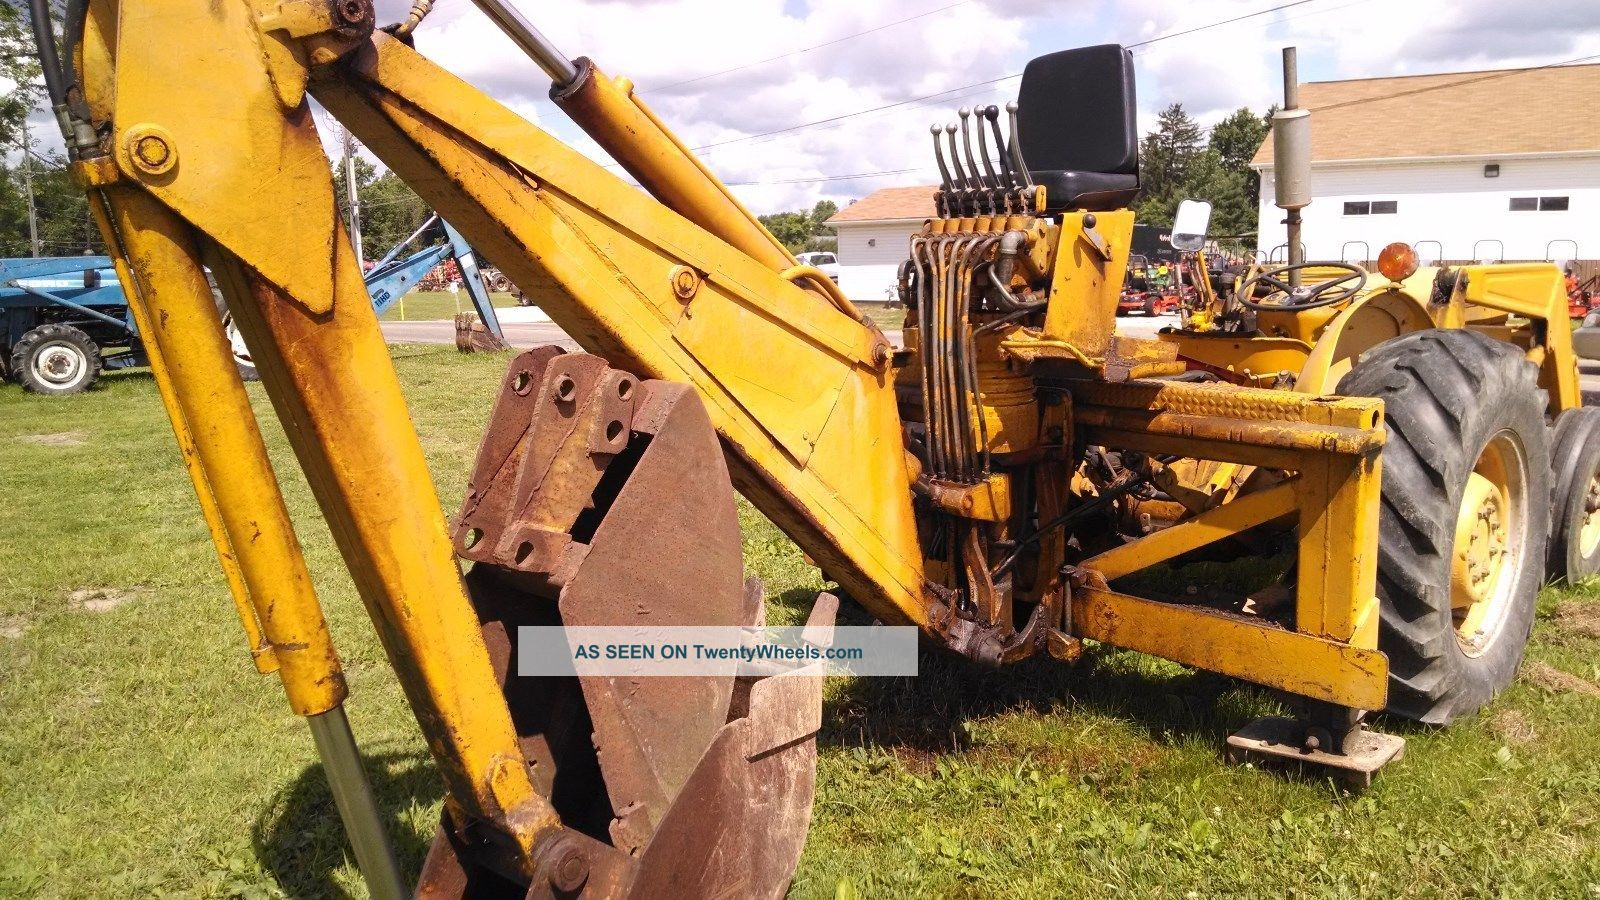 21447 Massey ferguson tractor loader backhoe  3 point  rear pto   middlefield ohio on used semi dump trailers ohio